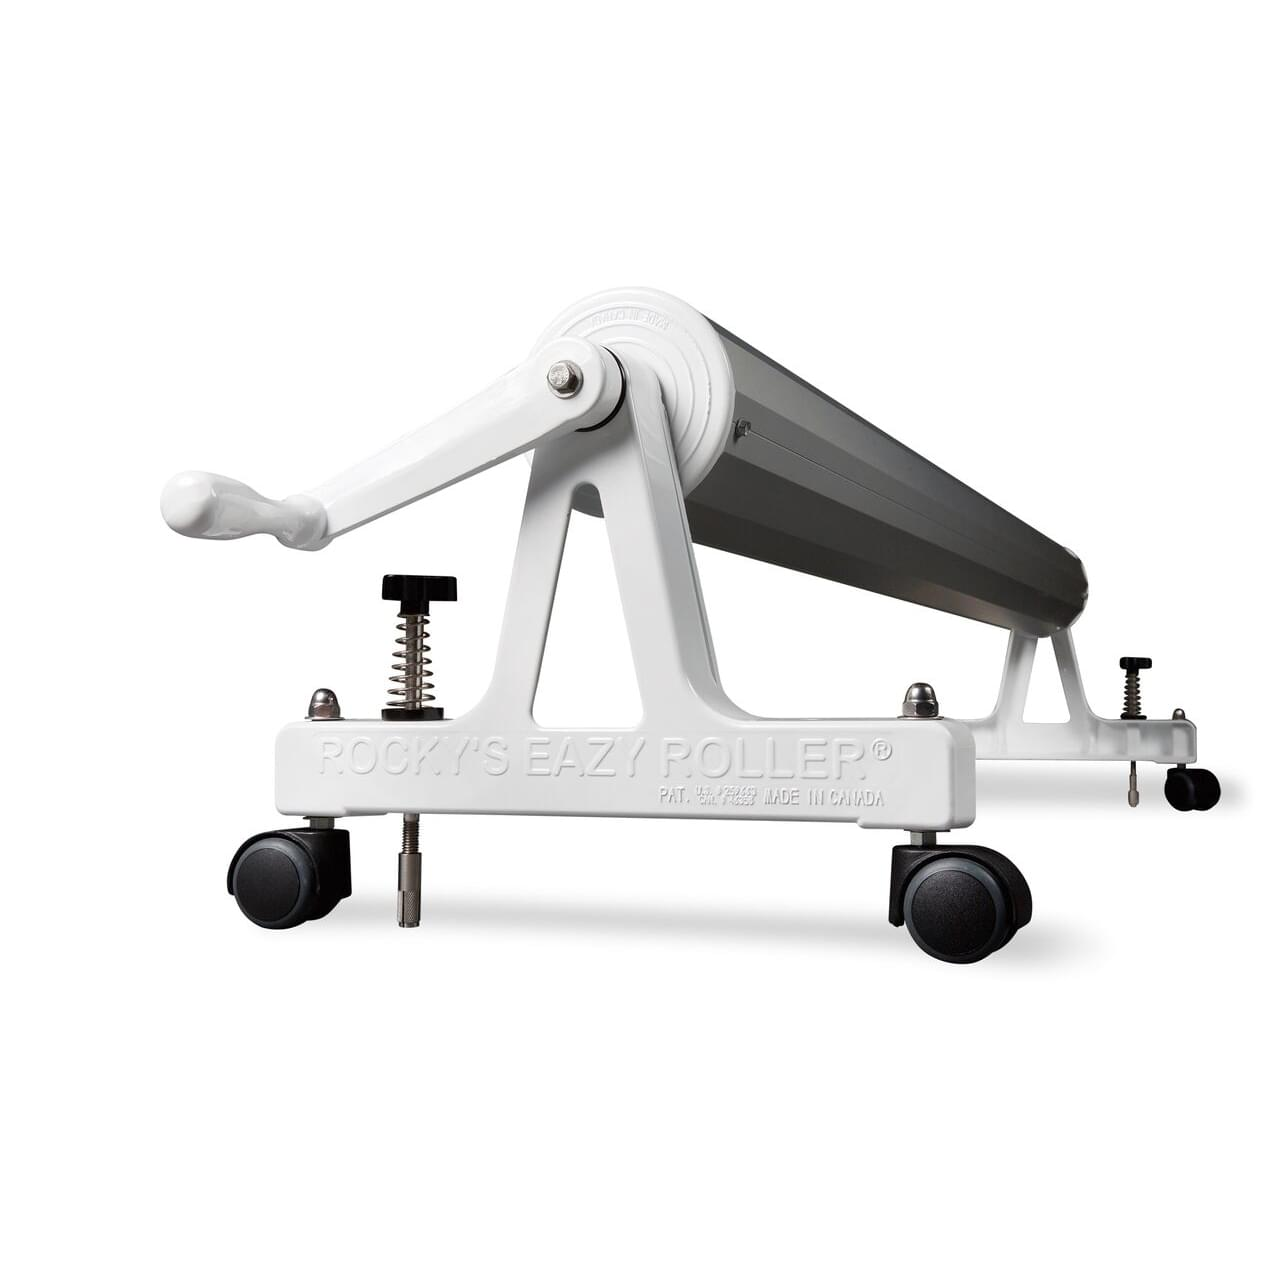 Rocky's 3A Inground Portable Eazy Solar Roller System with 20 ft Tube Included